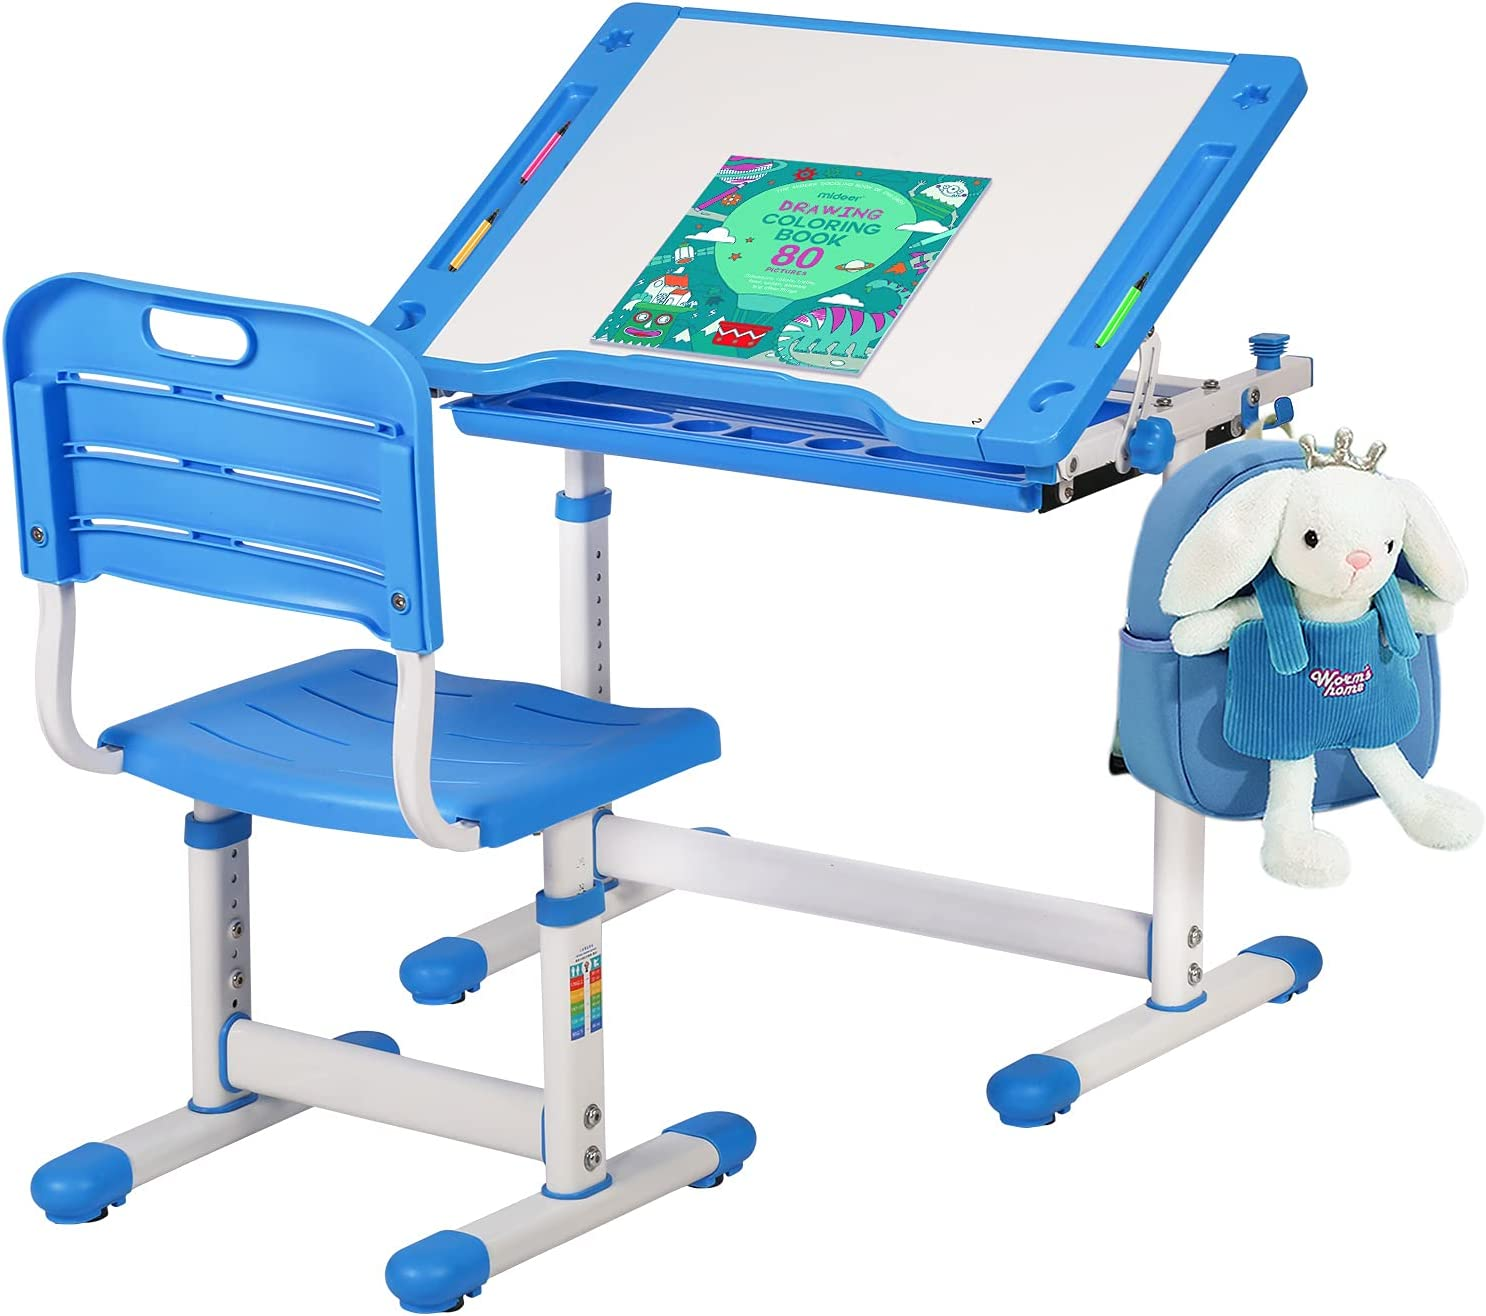 Challenge the Very popular! lowest price of Japan FDW Children Desk Kids and Chair Height Set Adjustable Stu